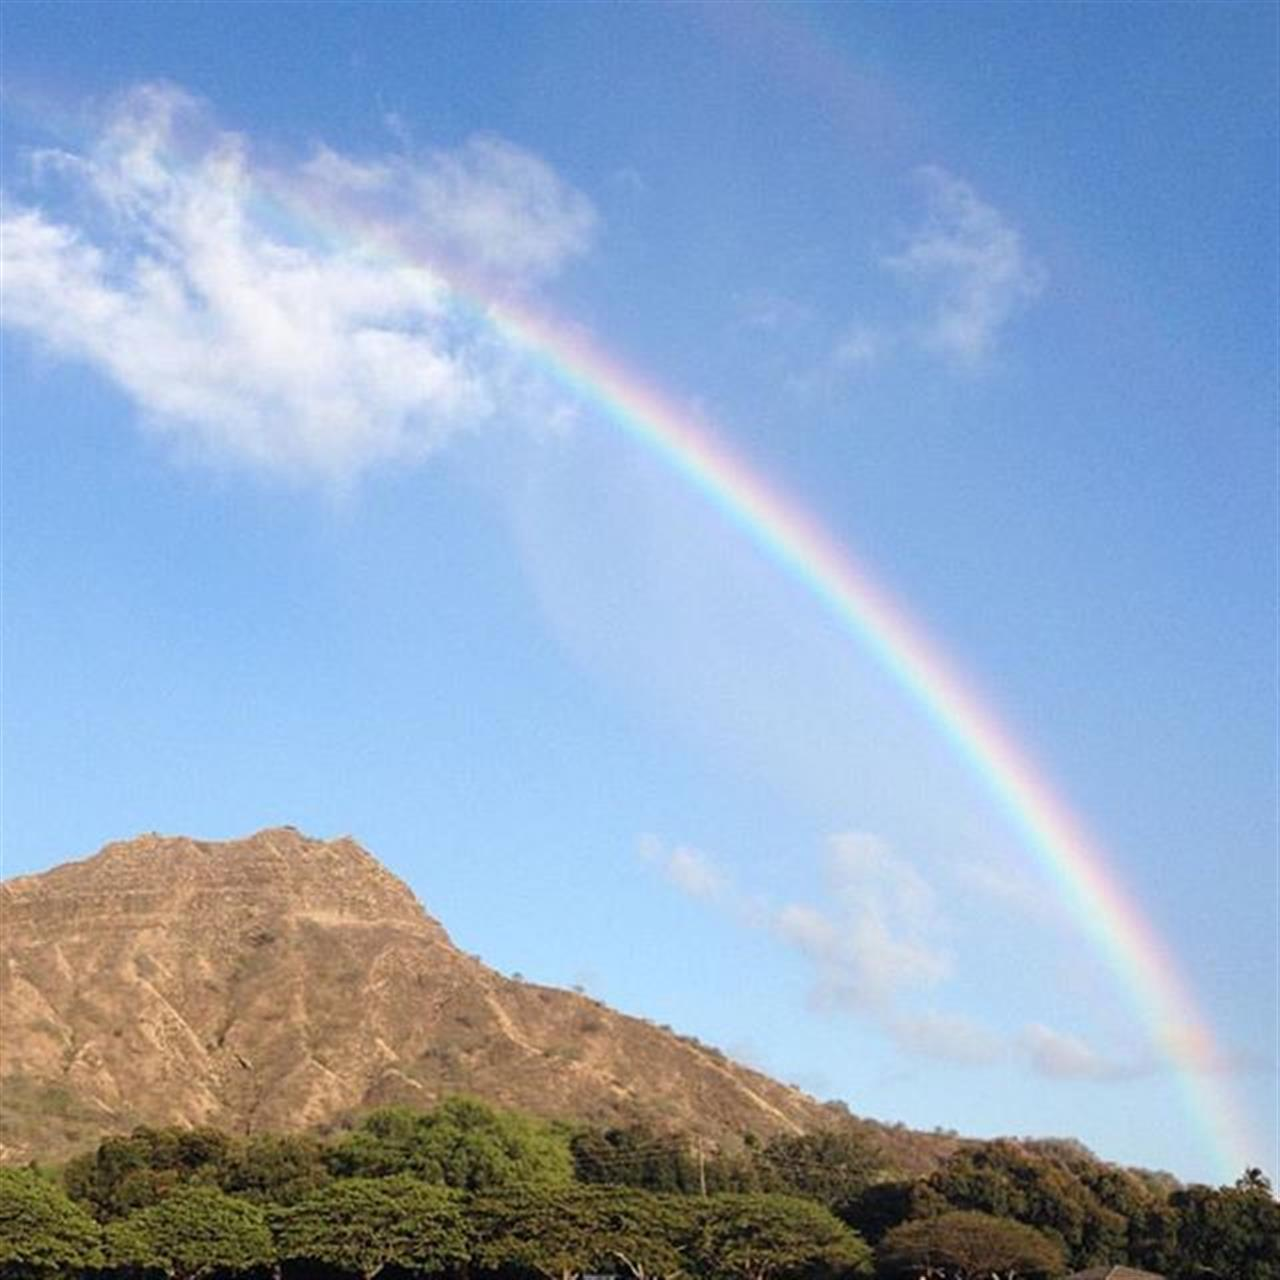 My #HawaiiLife is always framed by rainbows. View of #DiamondHead from #KapiolaniPark. #LeadingRELocal